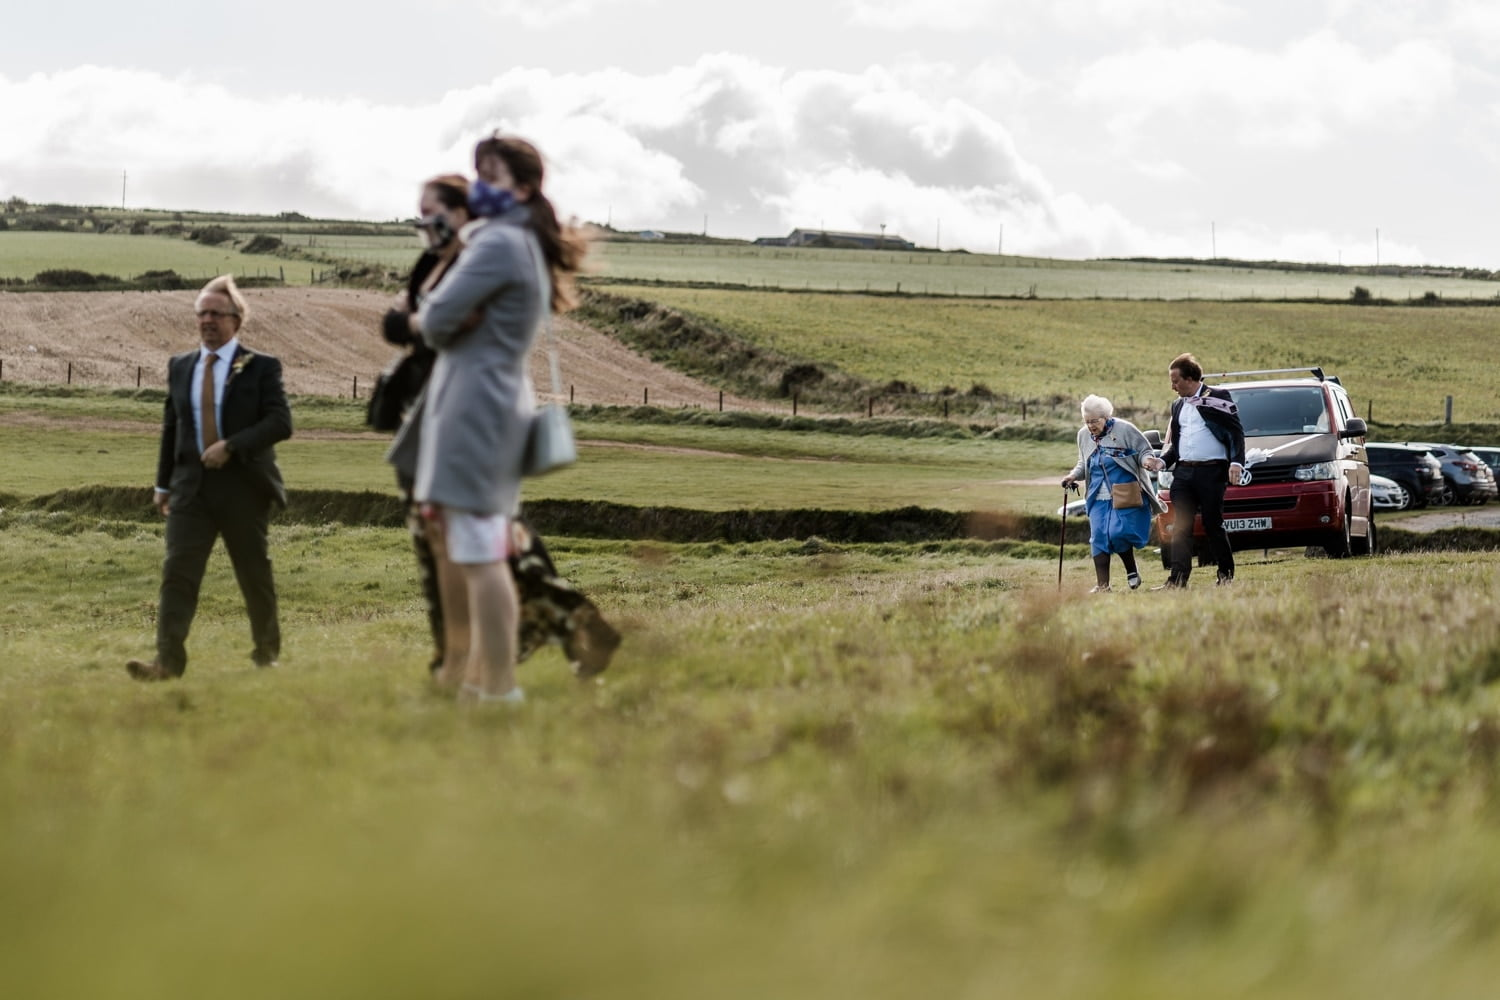 Guest arrive at Mwnt Church